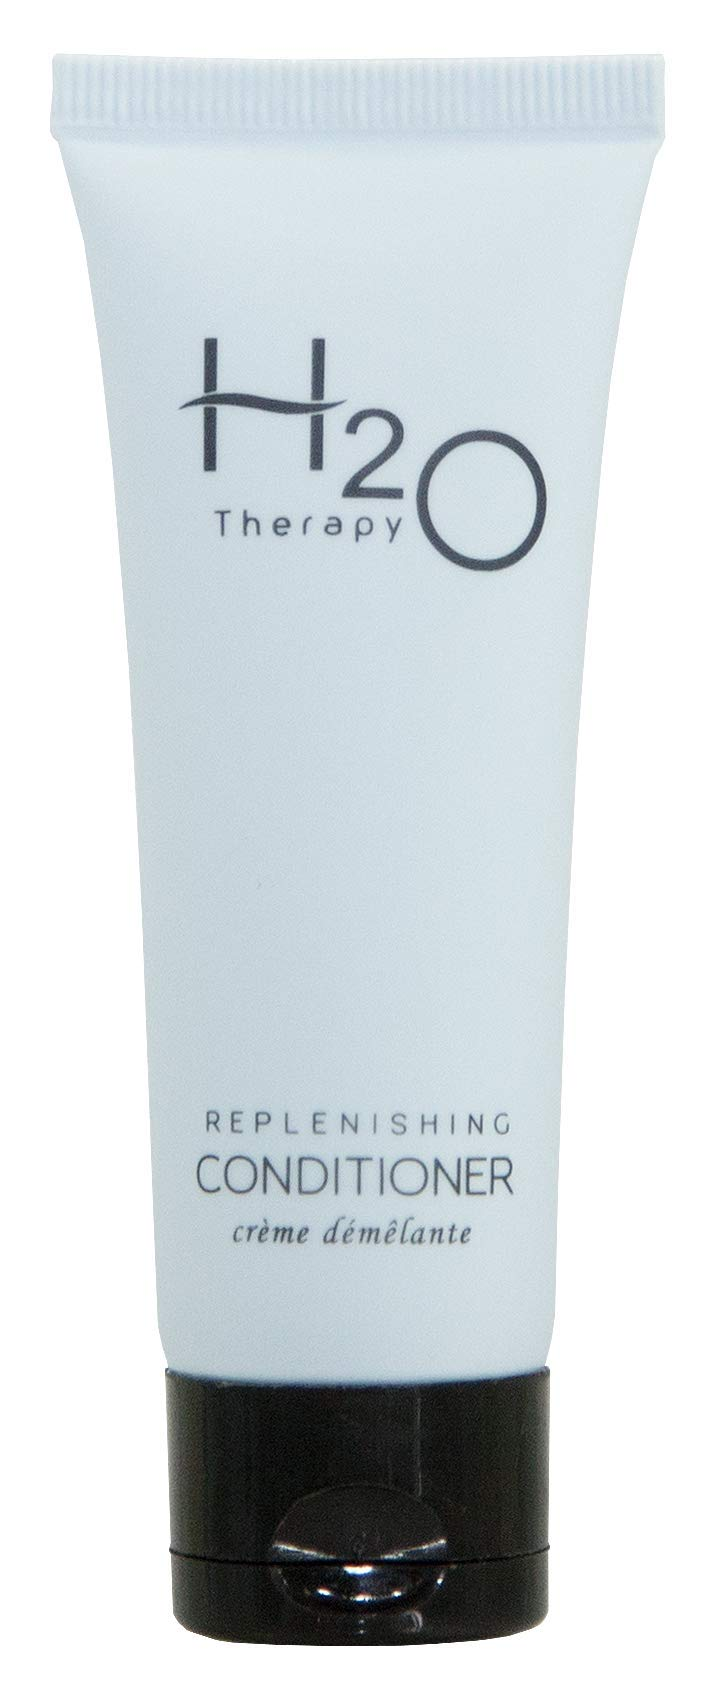 H2O Therapy Conditioner, Travel Size Hotel Hospitality, 1 oz (Case of 300)